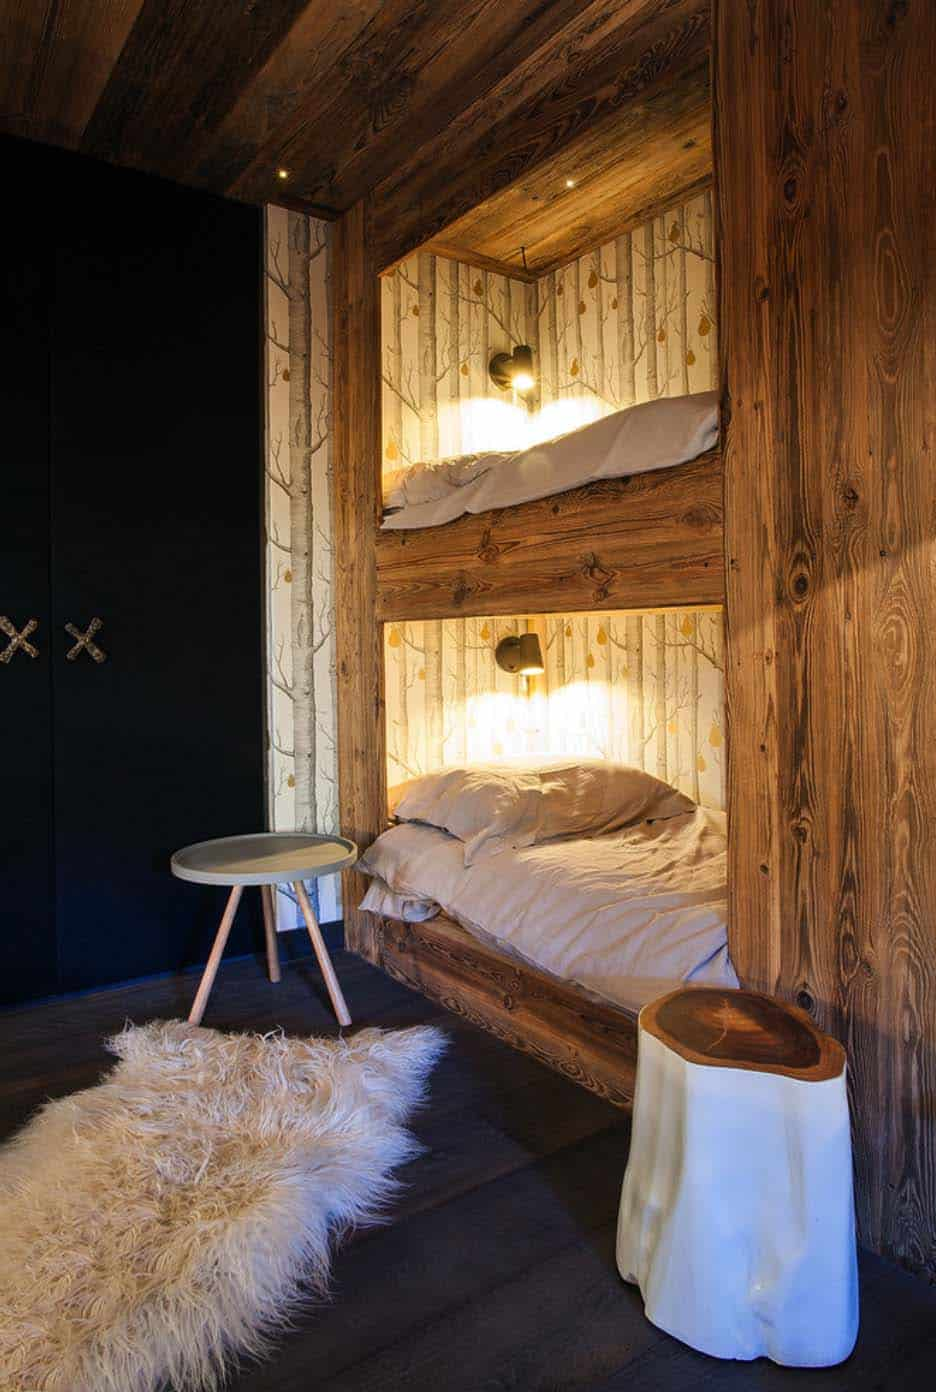 Rustic Chic Luxury Mountain Chalet In Megve France